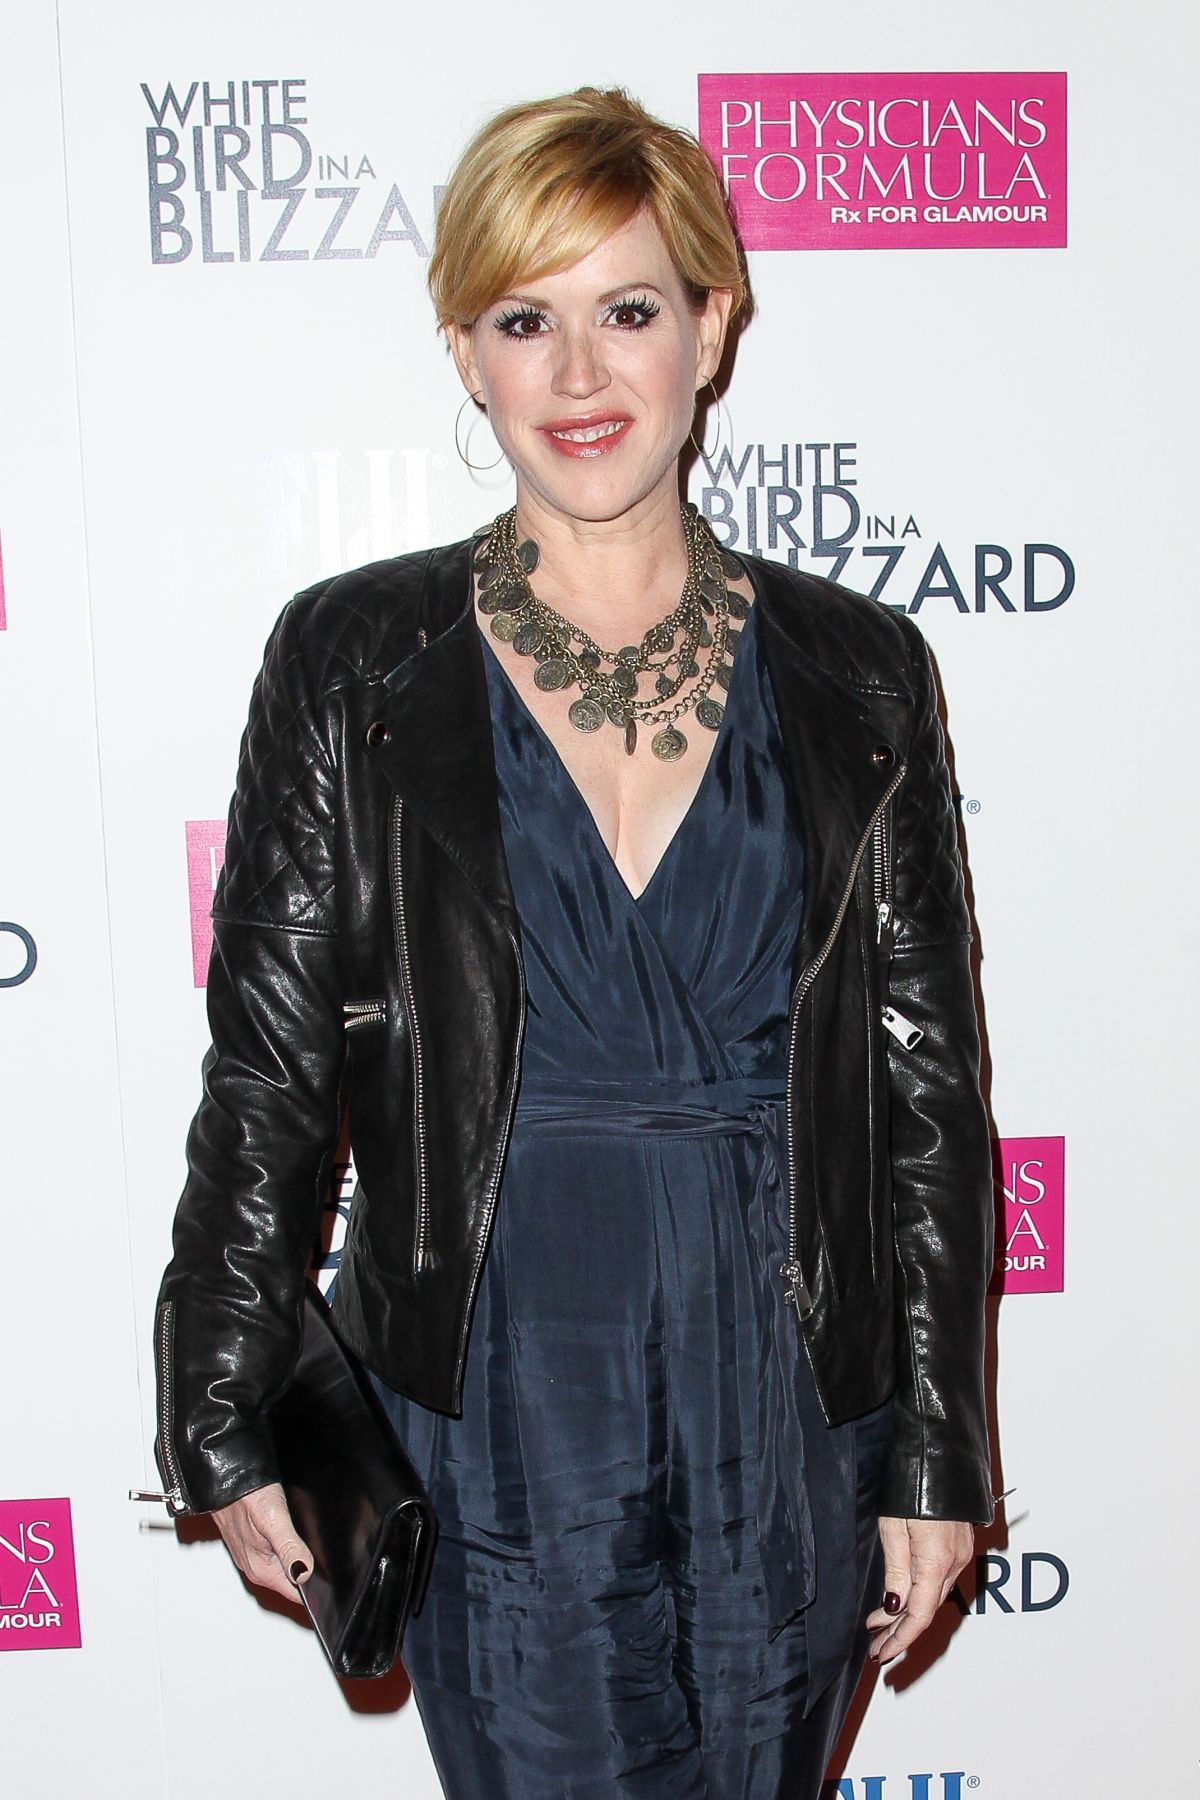 MOLLY RINGWALD at White Bird in a Blizzard Premiere in Los Angeles